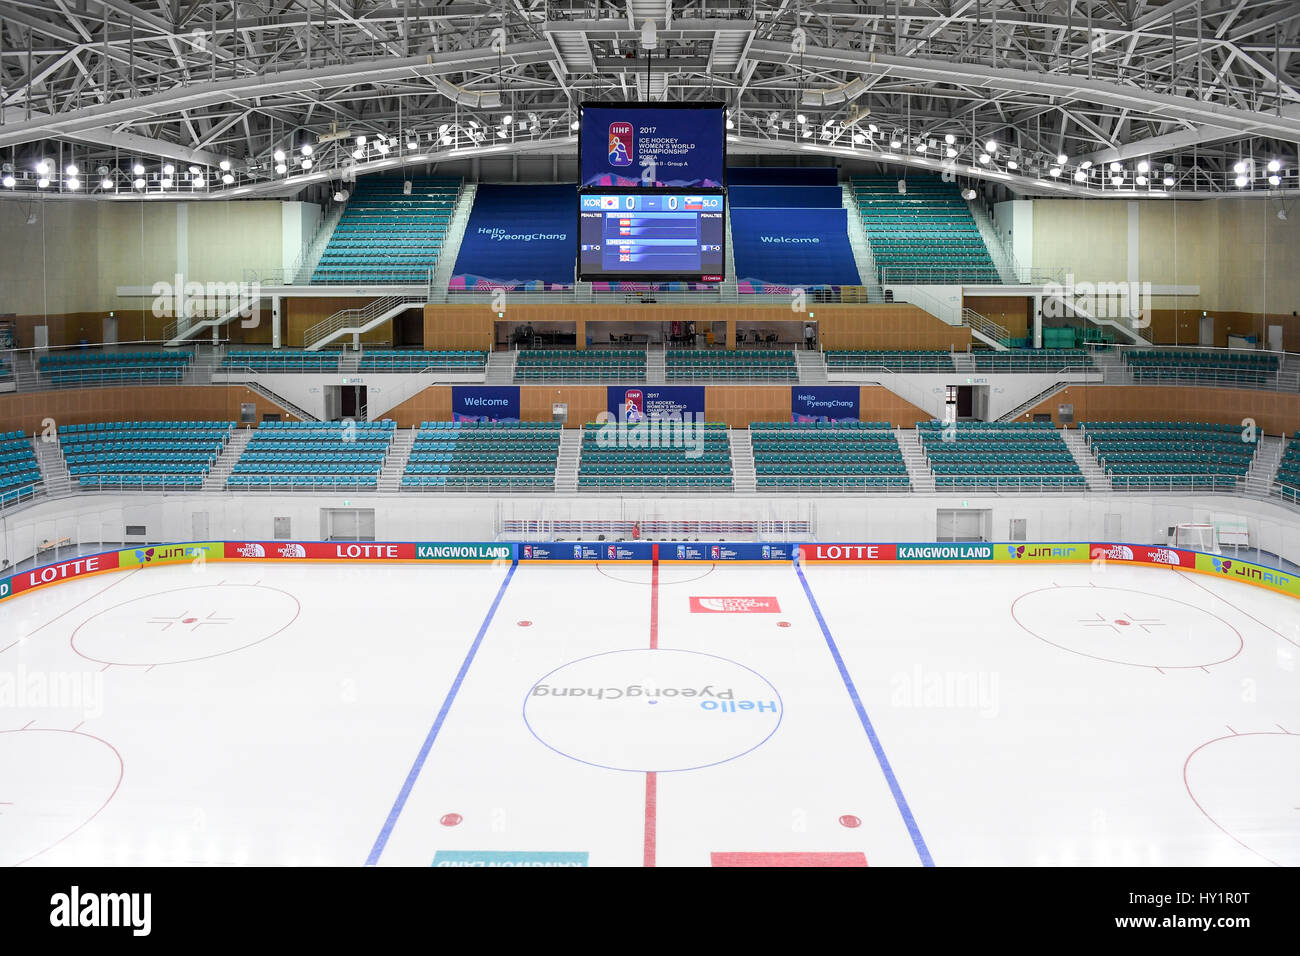 The Kwandong Hockey Arena - Stock Image